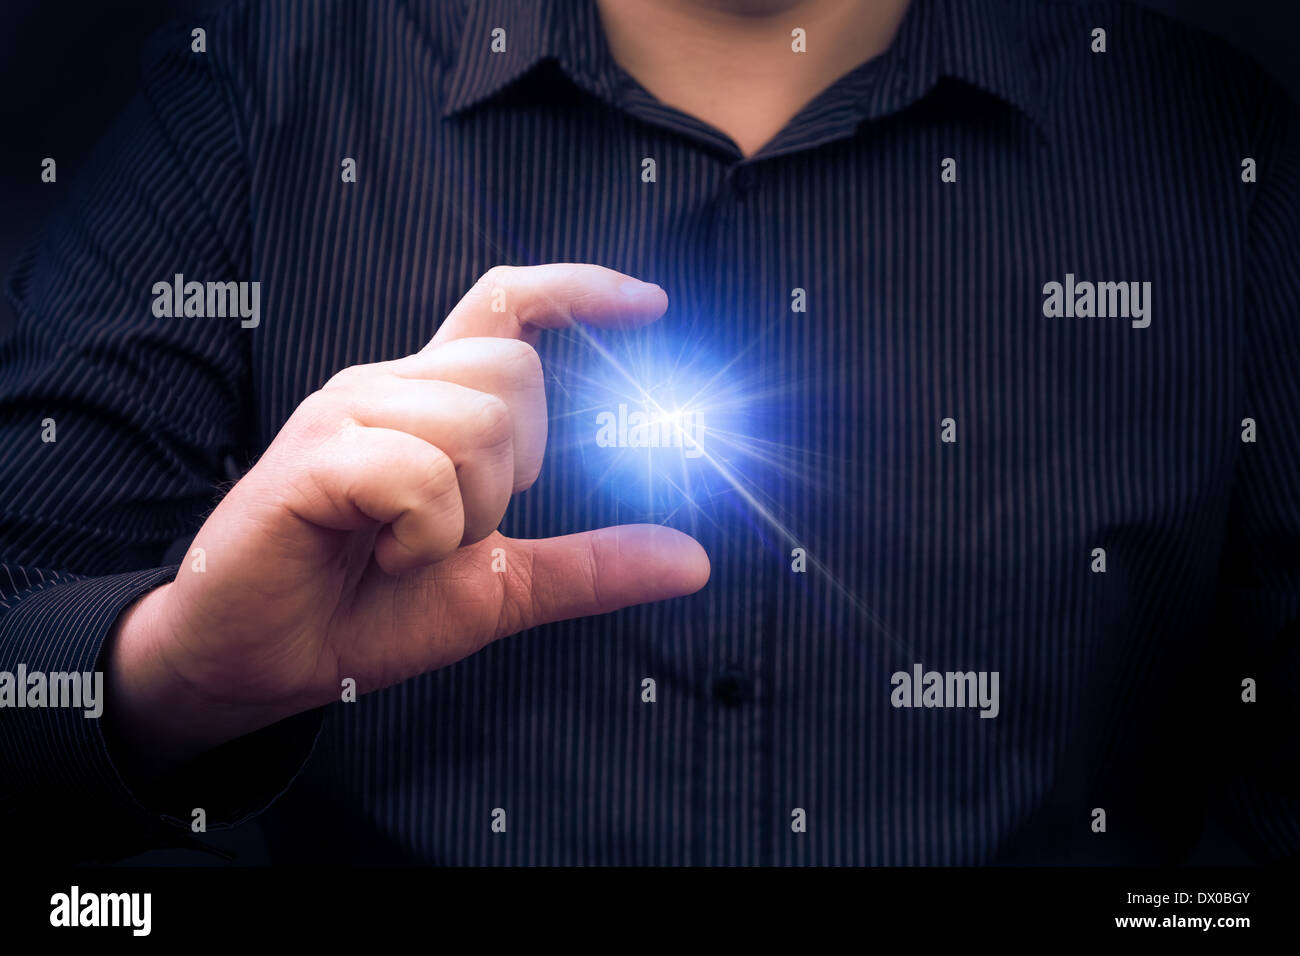 Mysteriously emitting power in the hand of a man - Stock Image